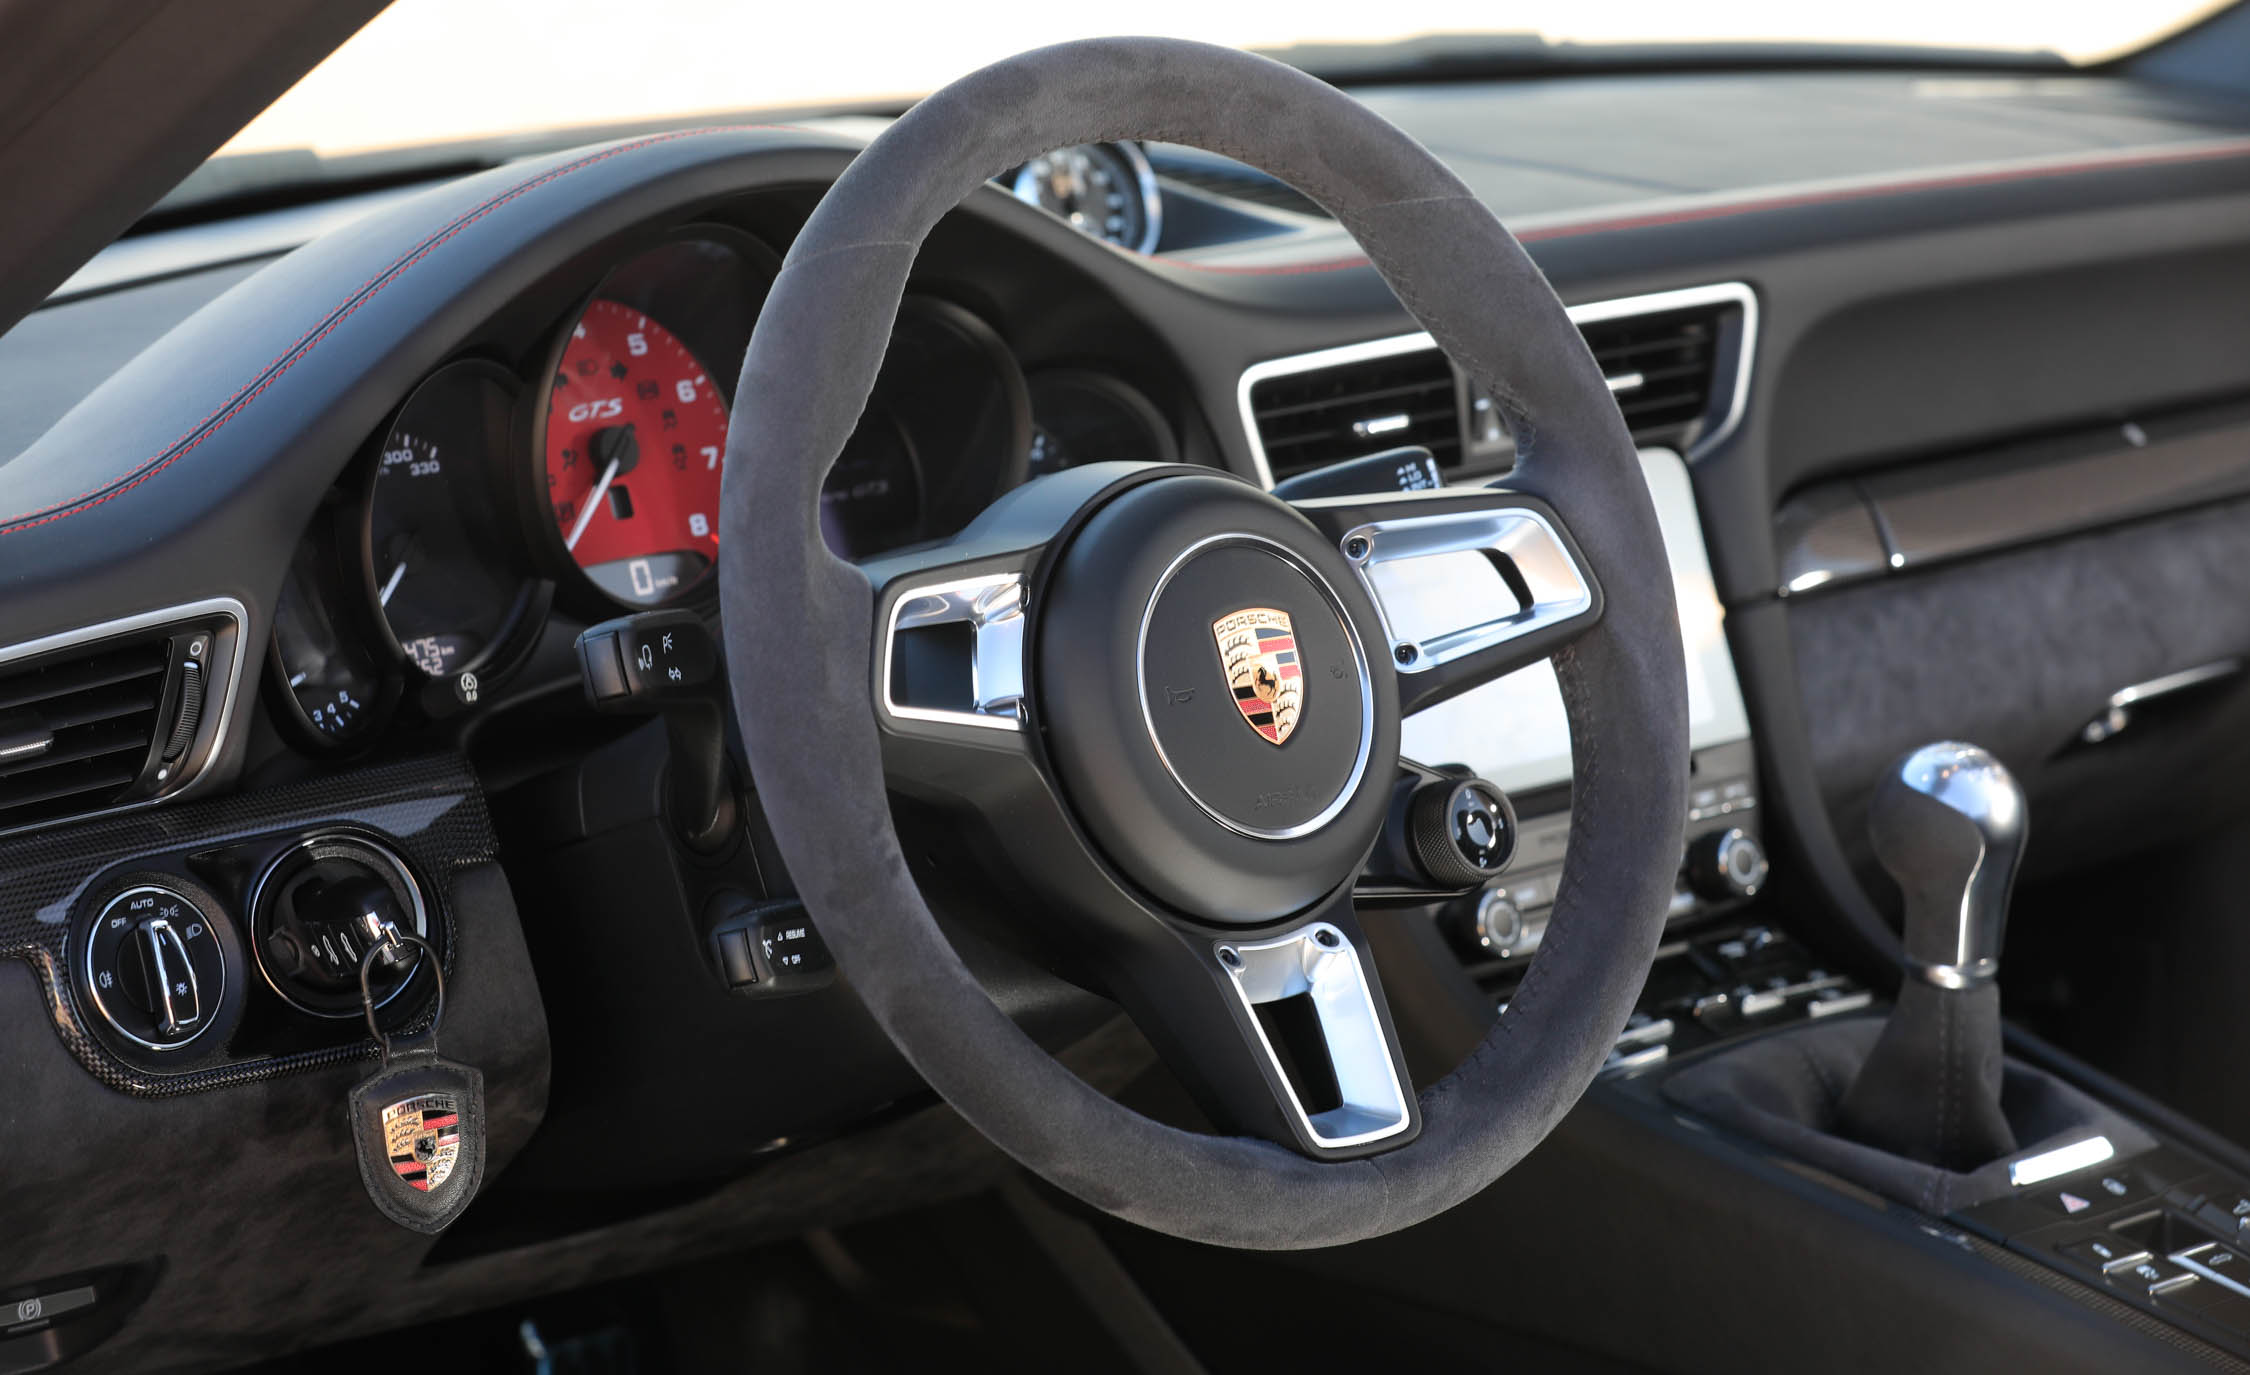 2017 Porsche 911 Carrera GTS Cabriolet Interior Driver Cockpit Steering (Photo 35 of 97)